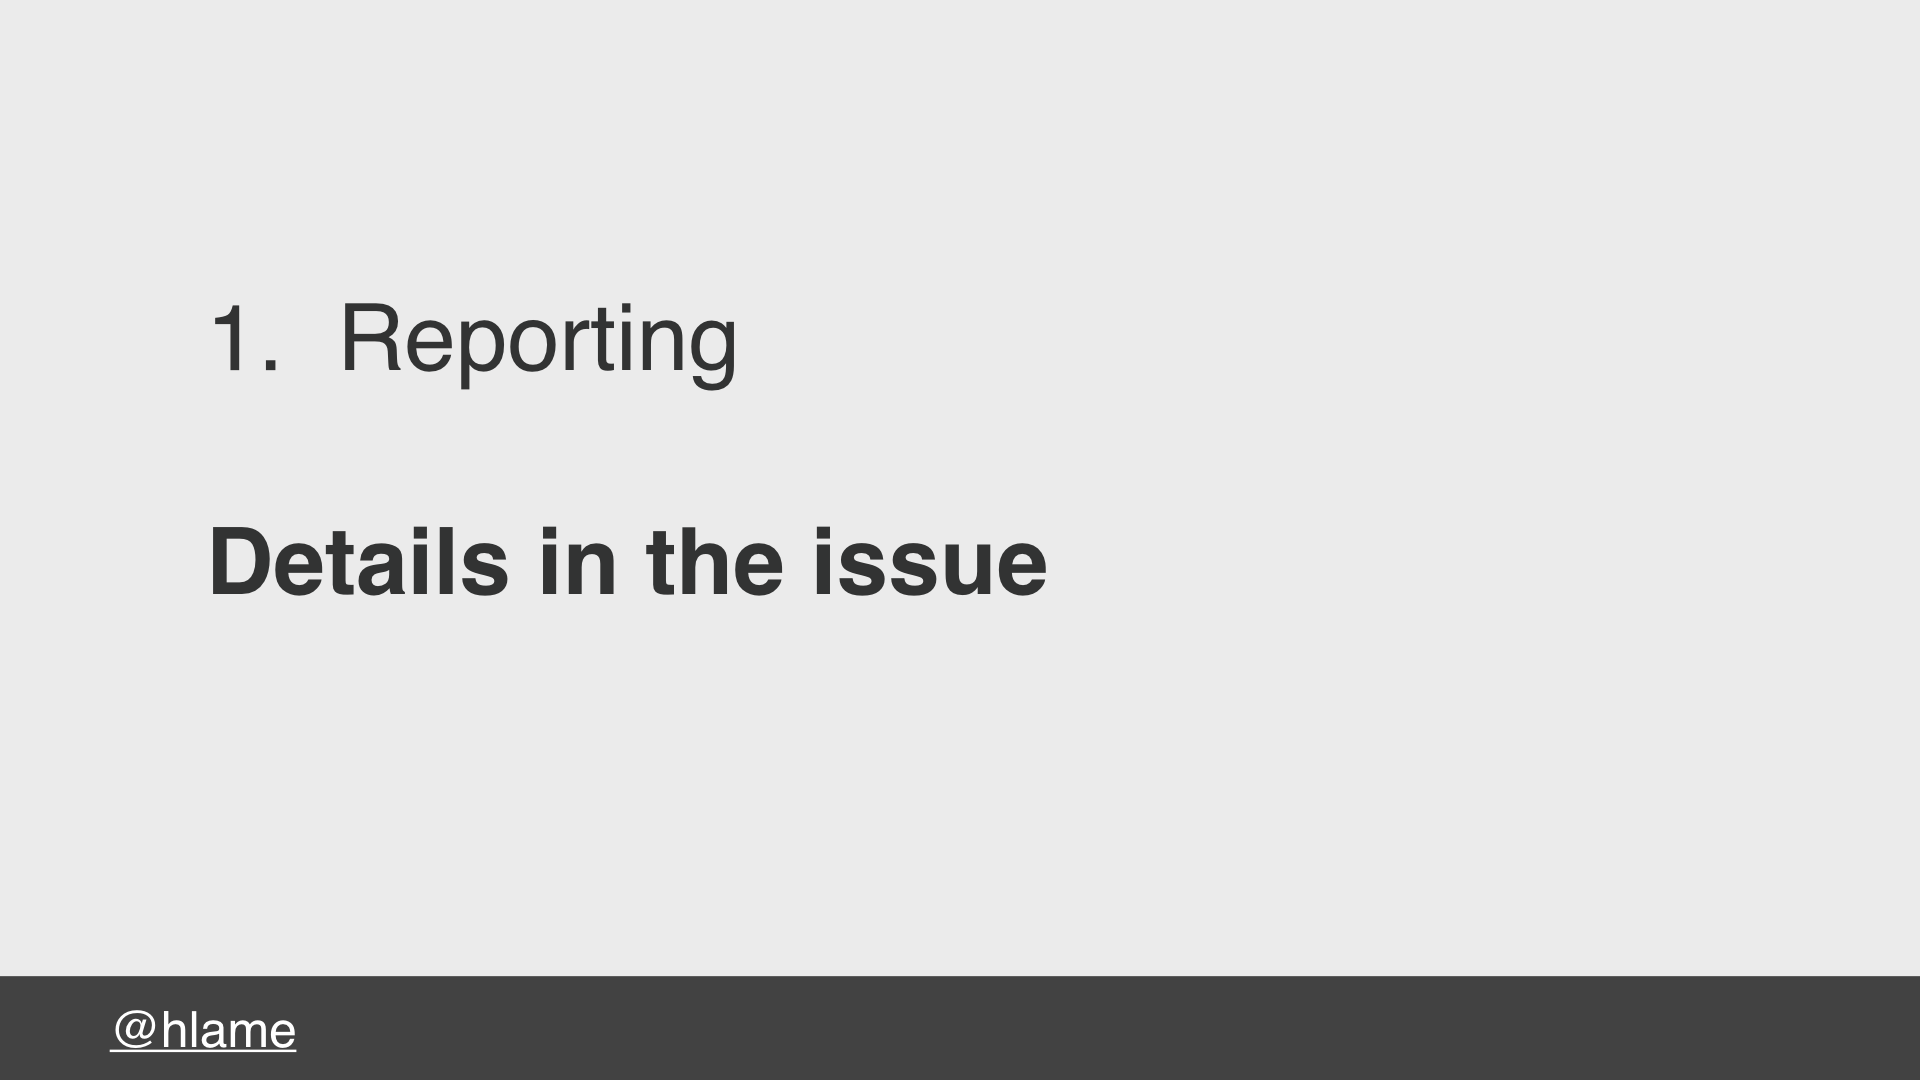 text: 1. Reporting, Details in the issue